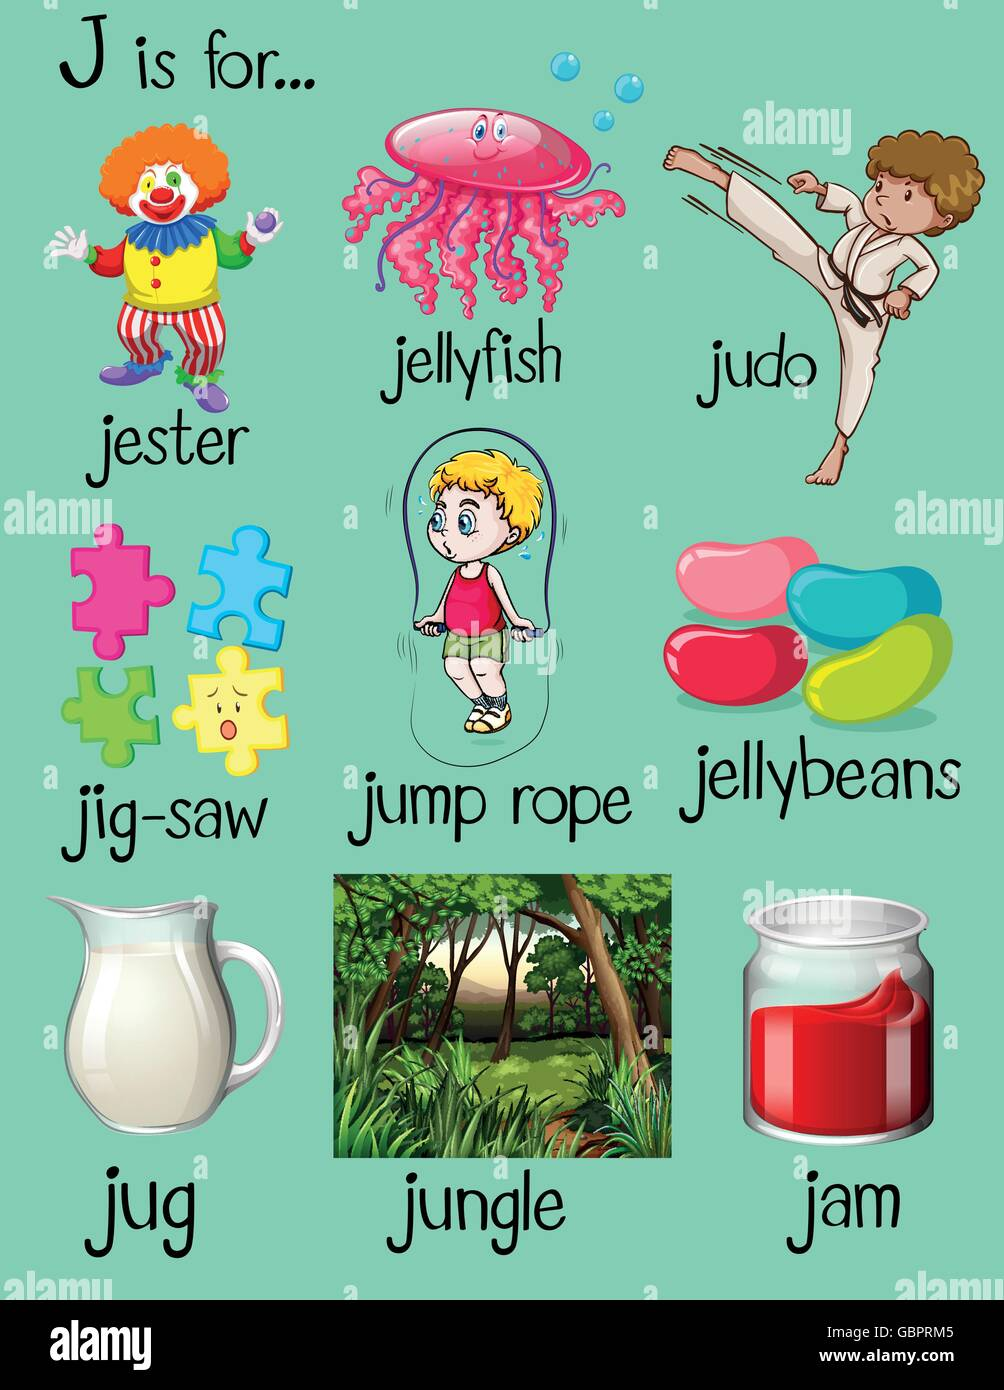 5 letter words starting with la j is for jam stock photos amp j is for jam stock images alamy 16253